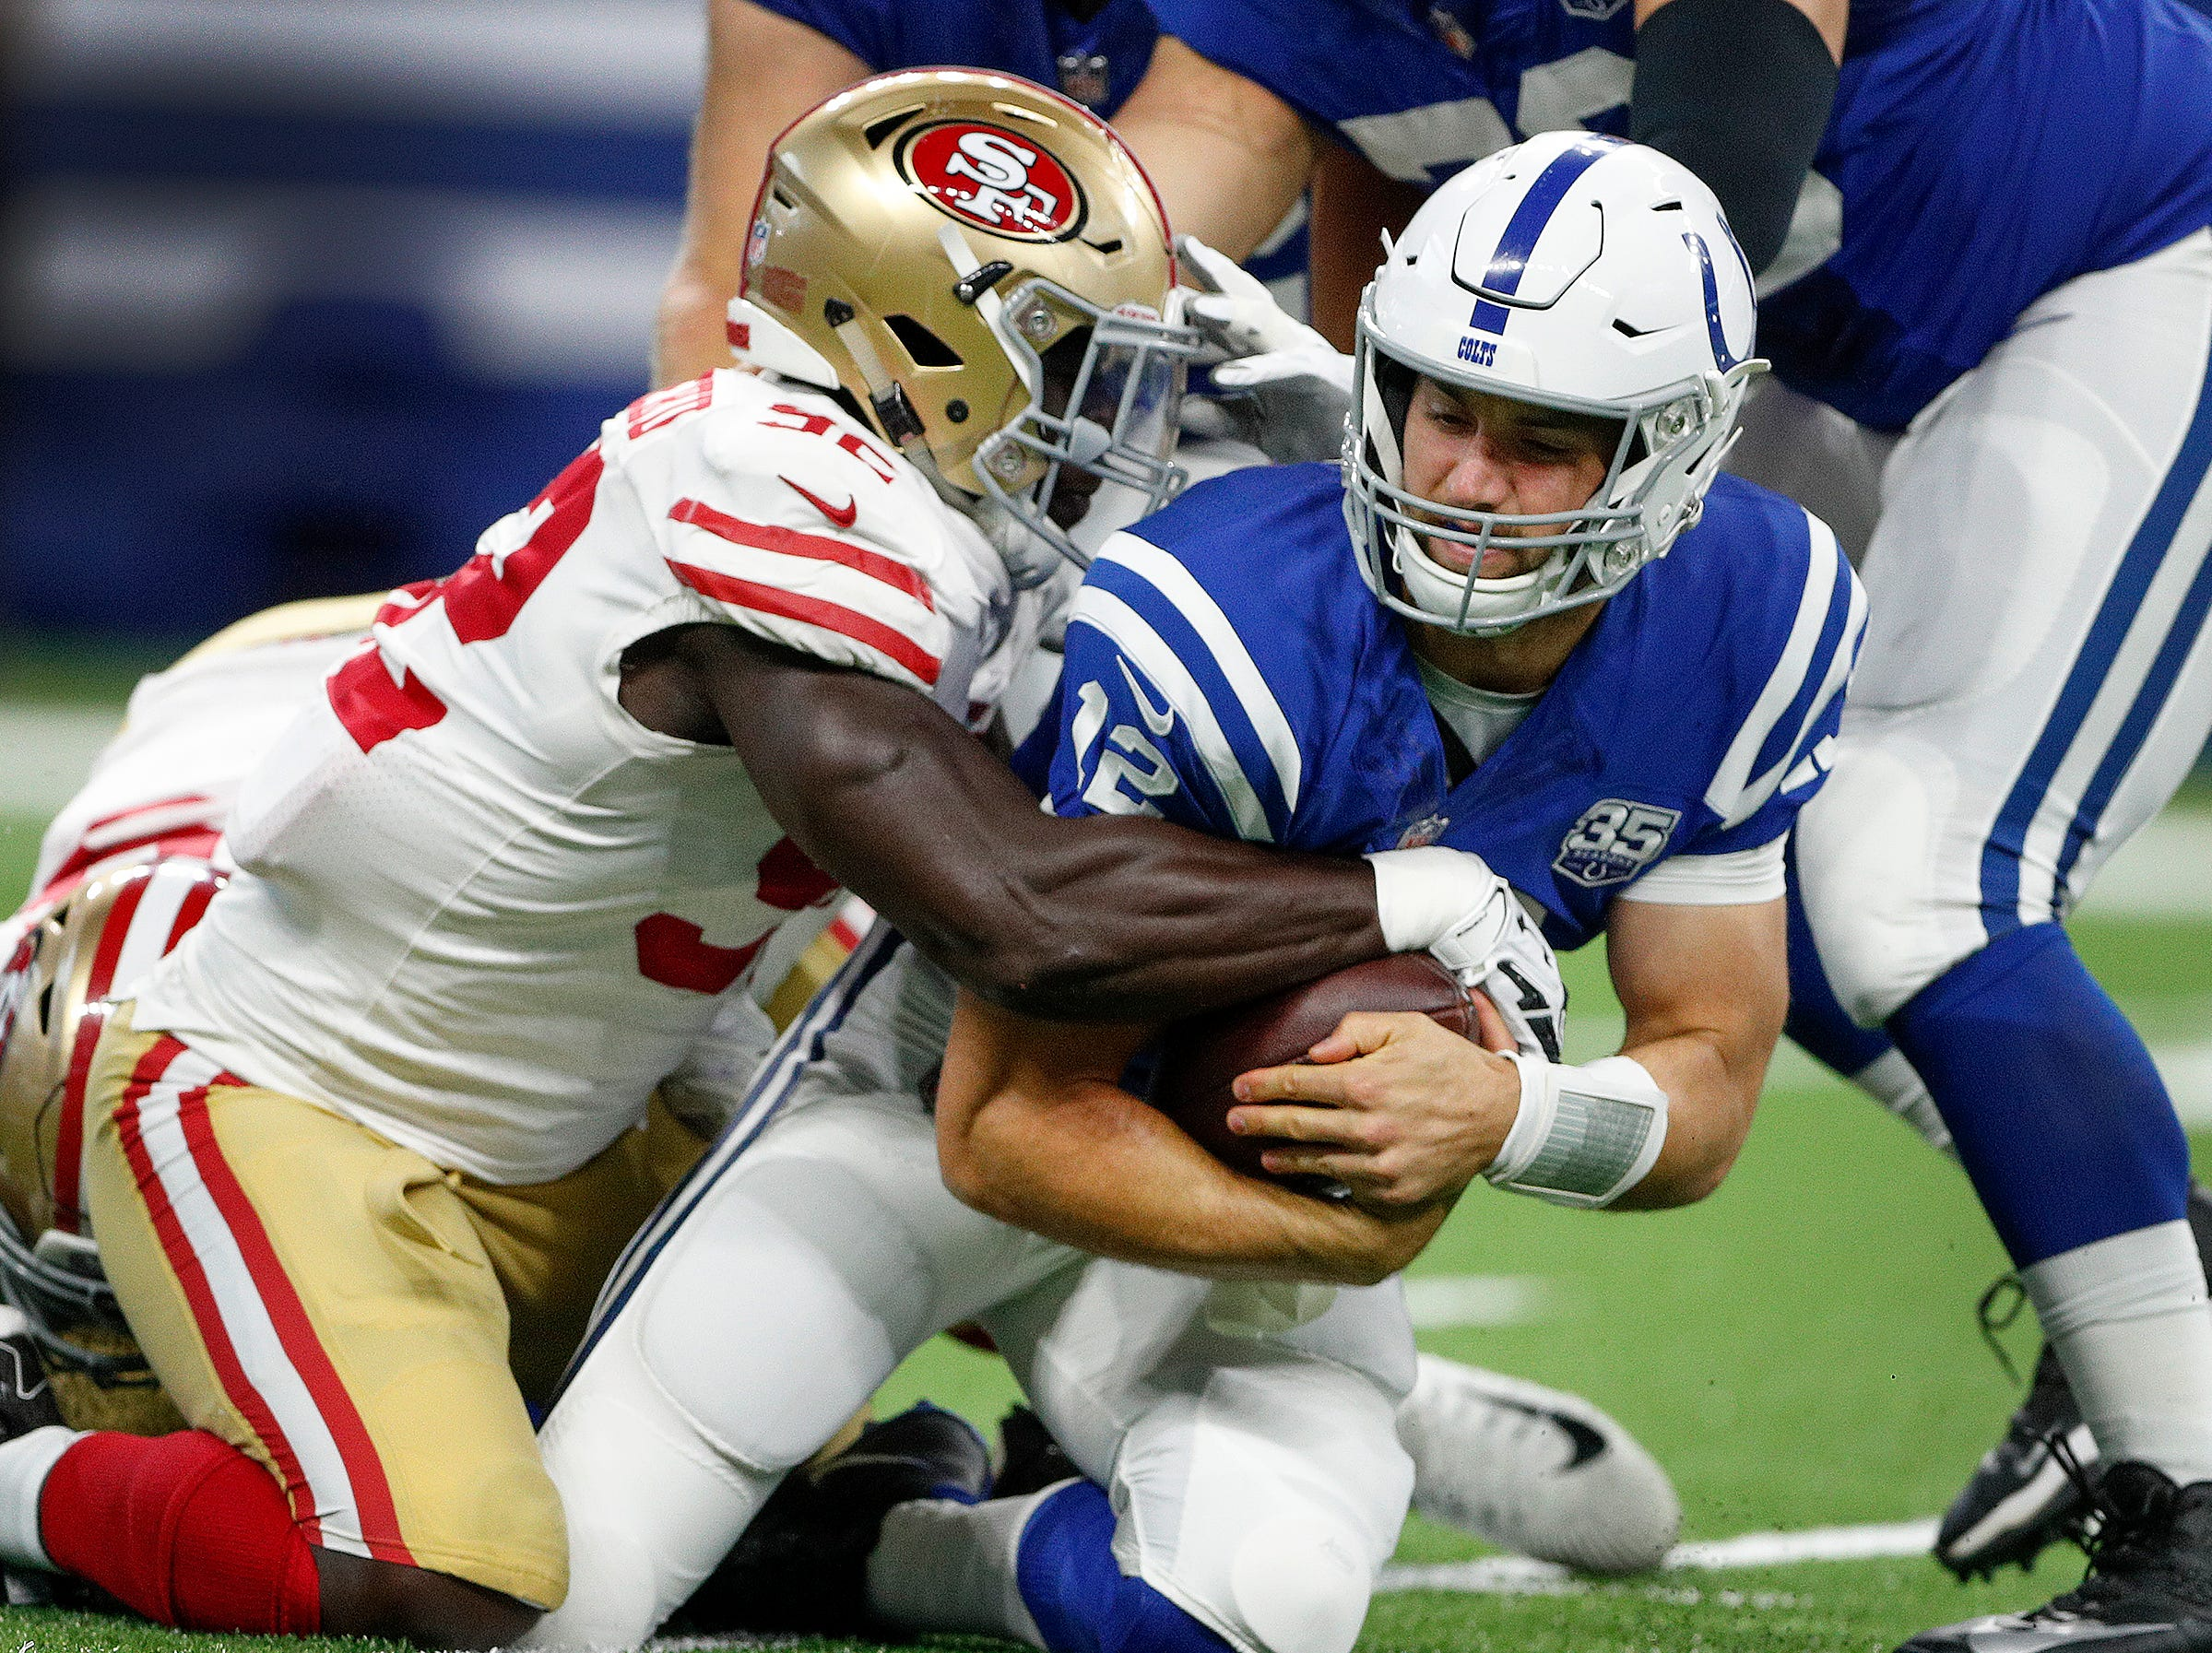 Indianapolis Colts quarterback Andrew Luck (12) is sacked by San Francisco 49ers defensive end Jeremiah Attaochu (92) in the first half of their preseason football game at Lucas Oil Stadium Saturday, August 25, 2018.